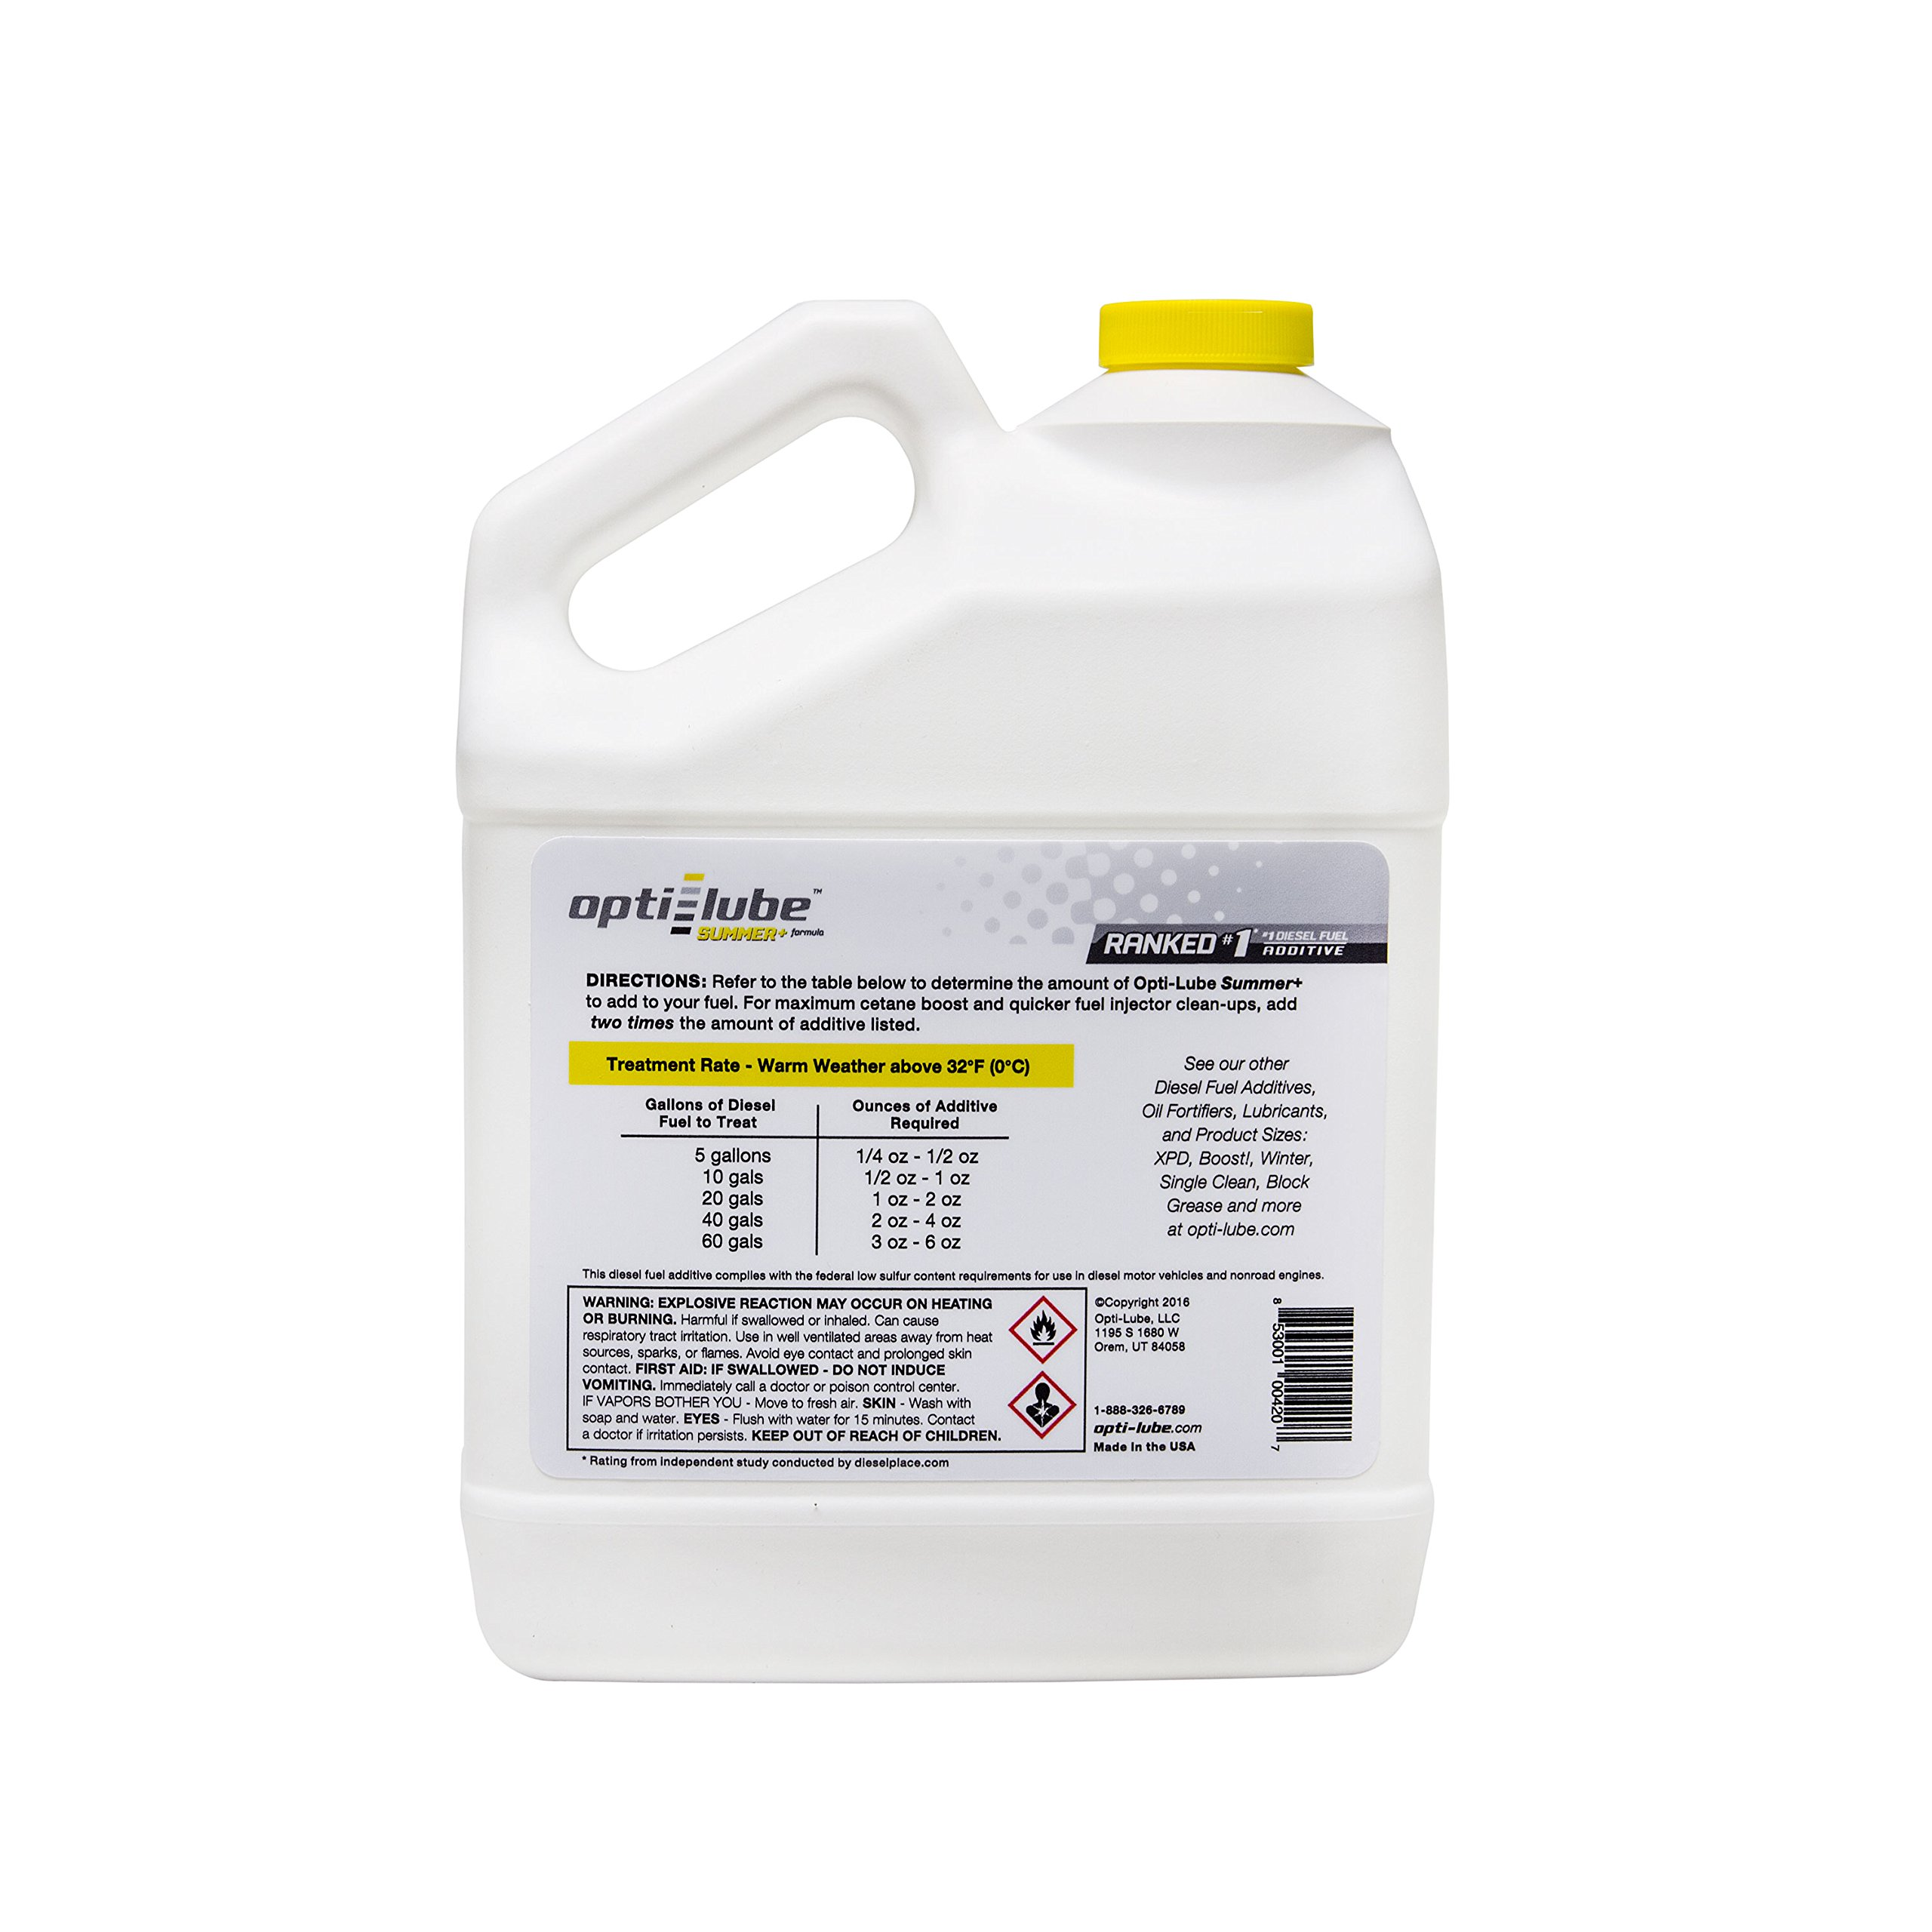 Opti-Lube Summer+ Formula Diesel Fuel Additive: 1 Gallon without Accessories Treats up to 2,560 Gallons